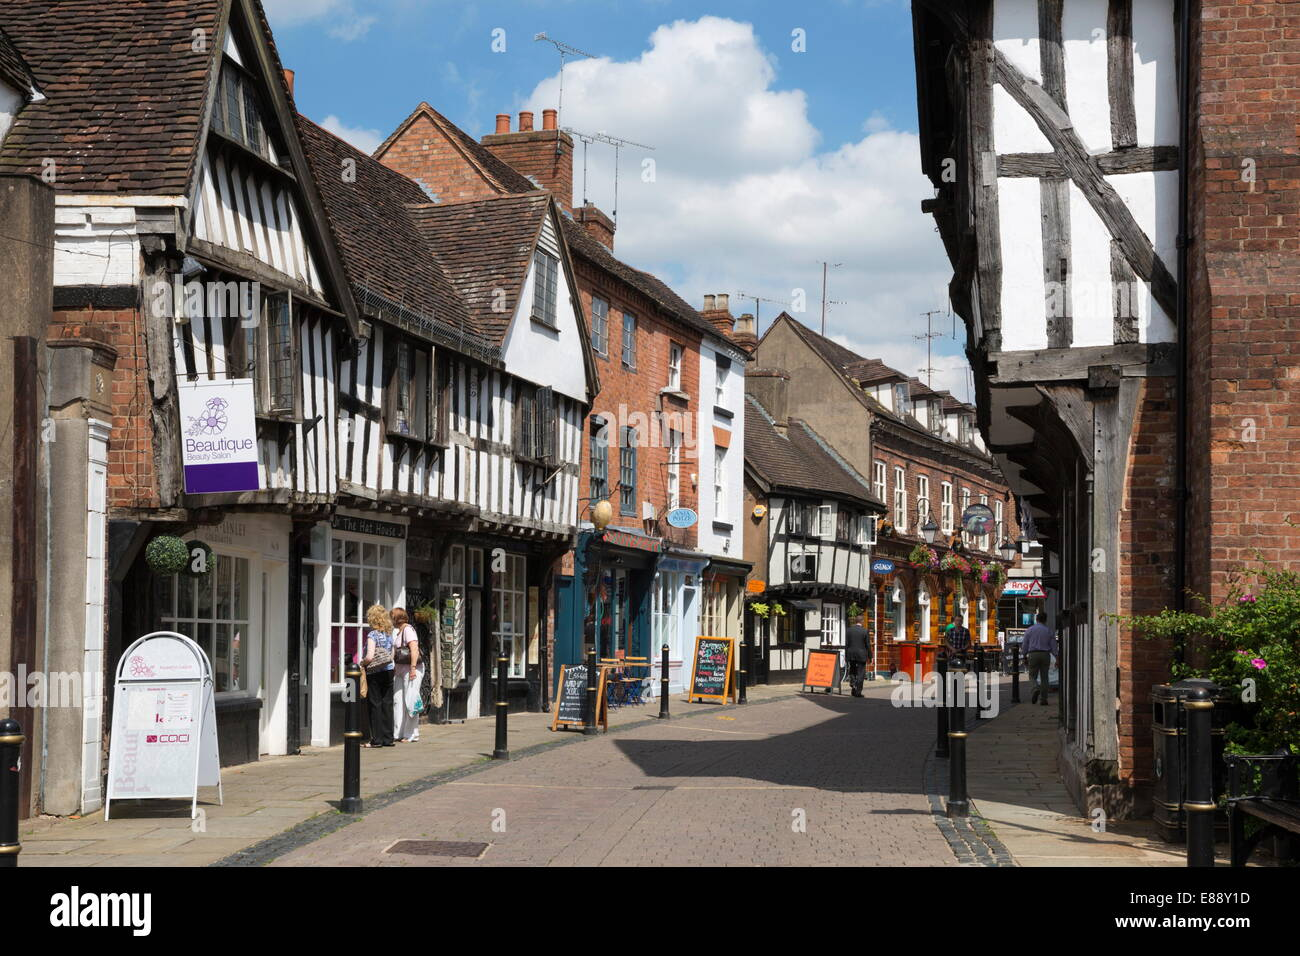 Old half-timbered buildings, Friar Street, Worcester, Worcestershire, England, United Kingdom, Europe - Stock Image